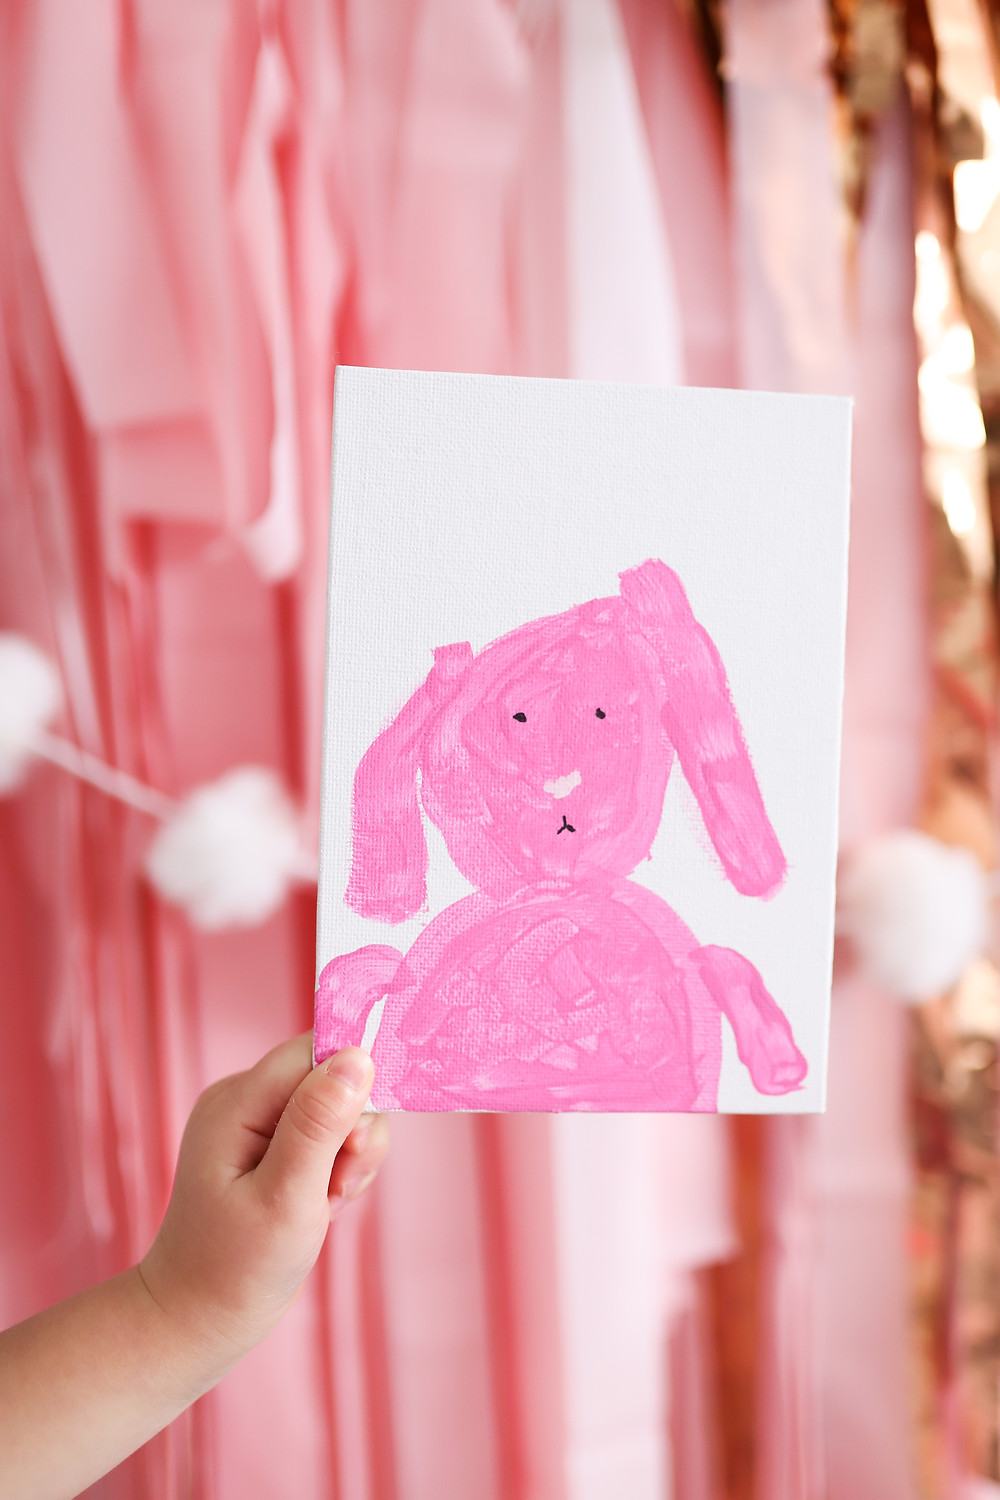 A pink bunny drawing painted on a piece of paper made by a child.